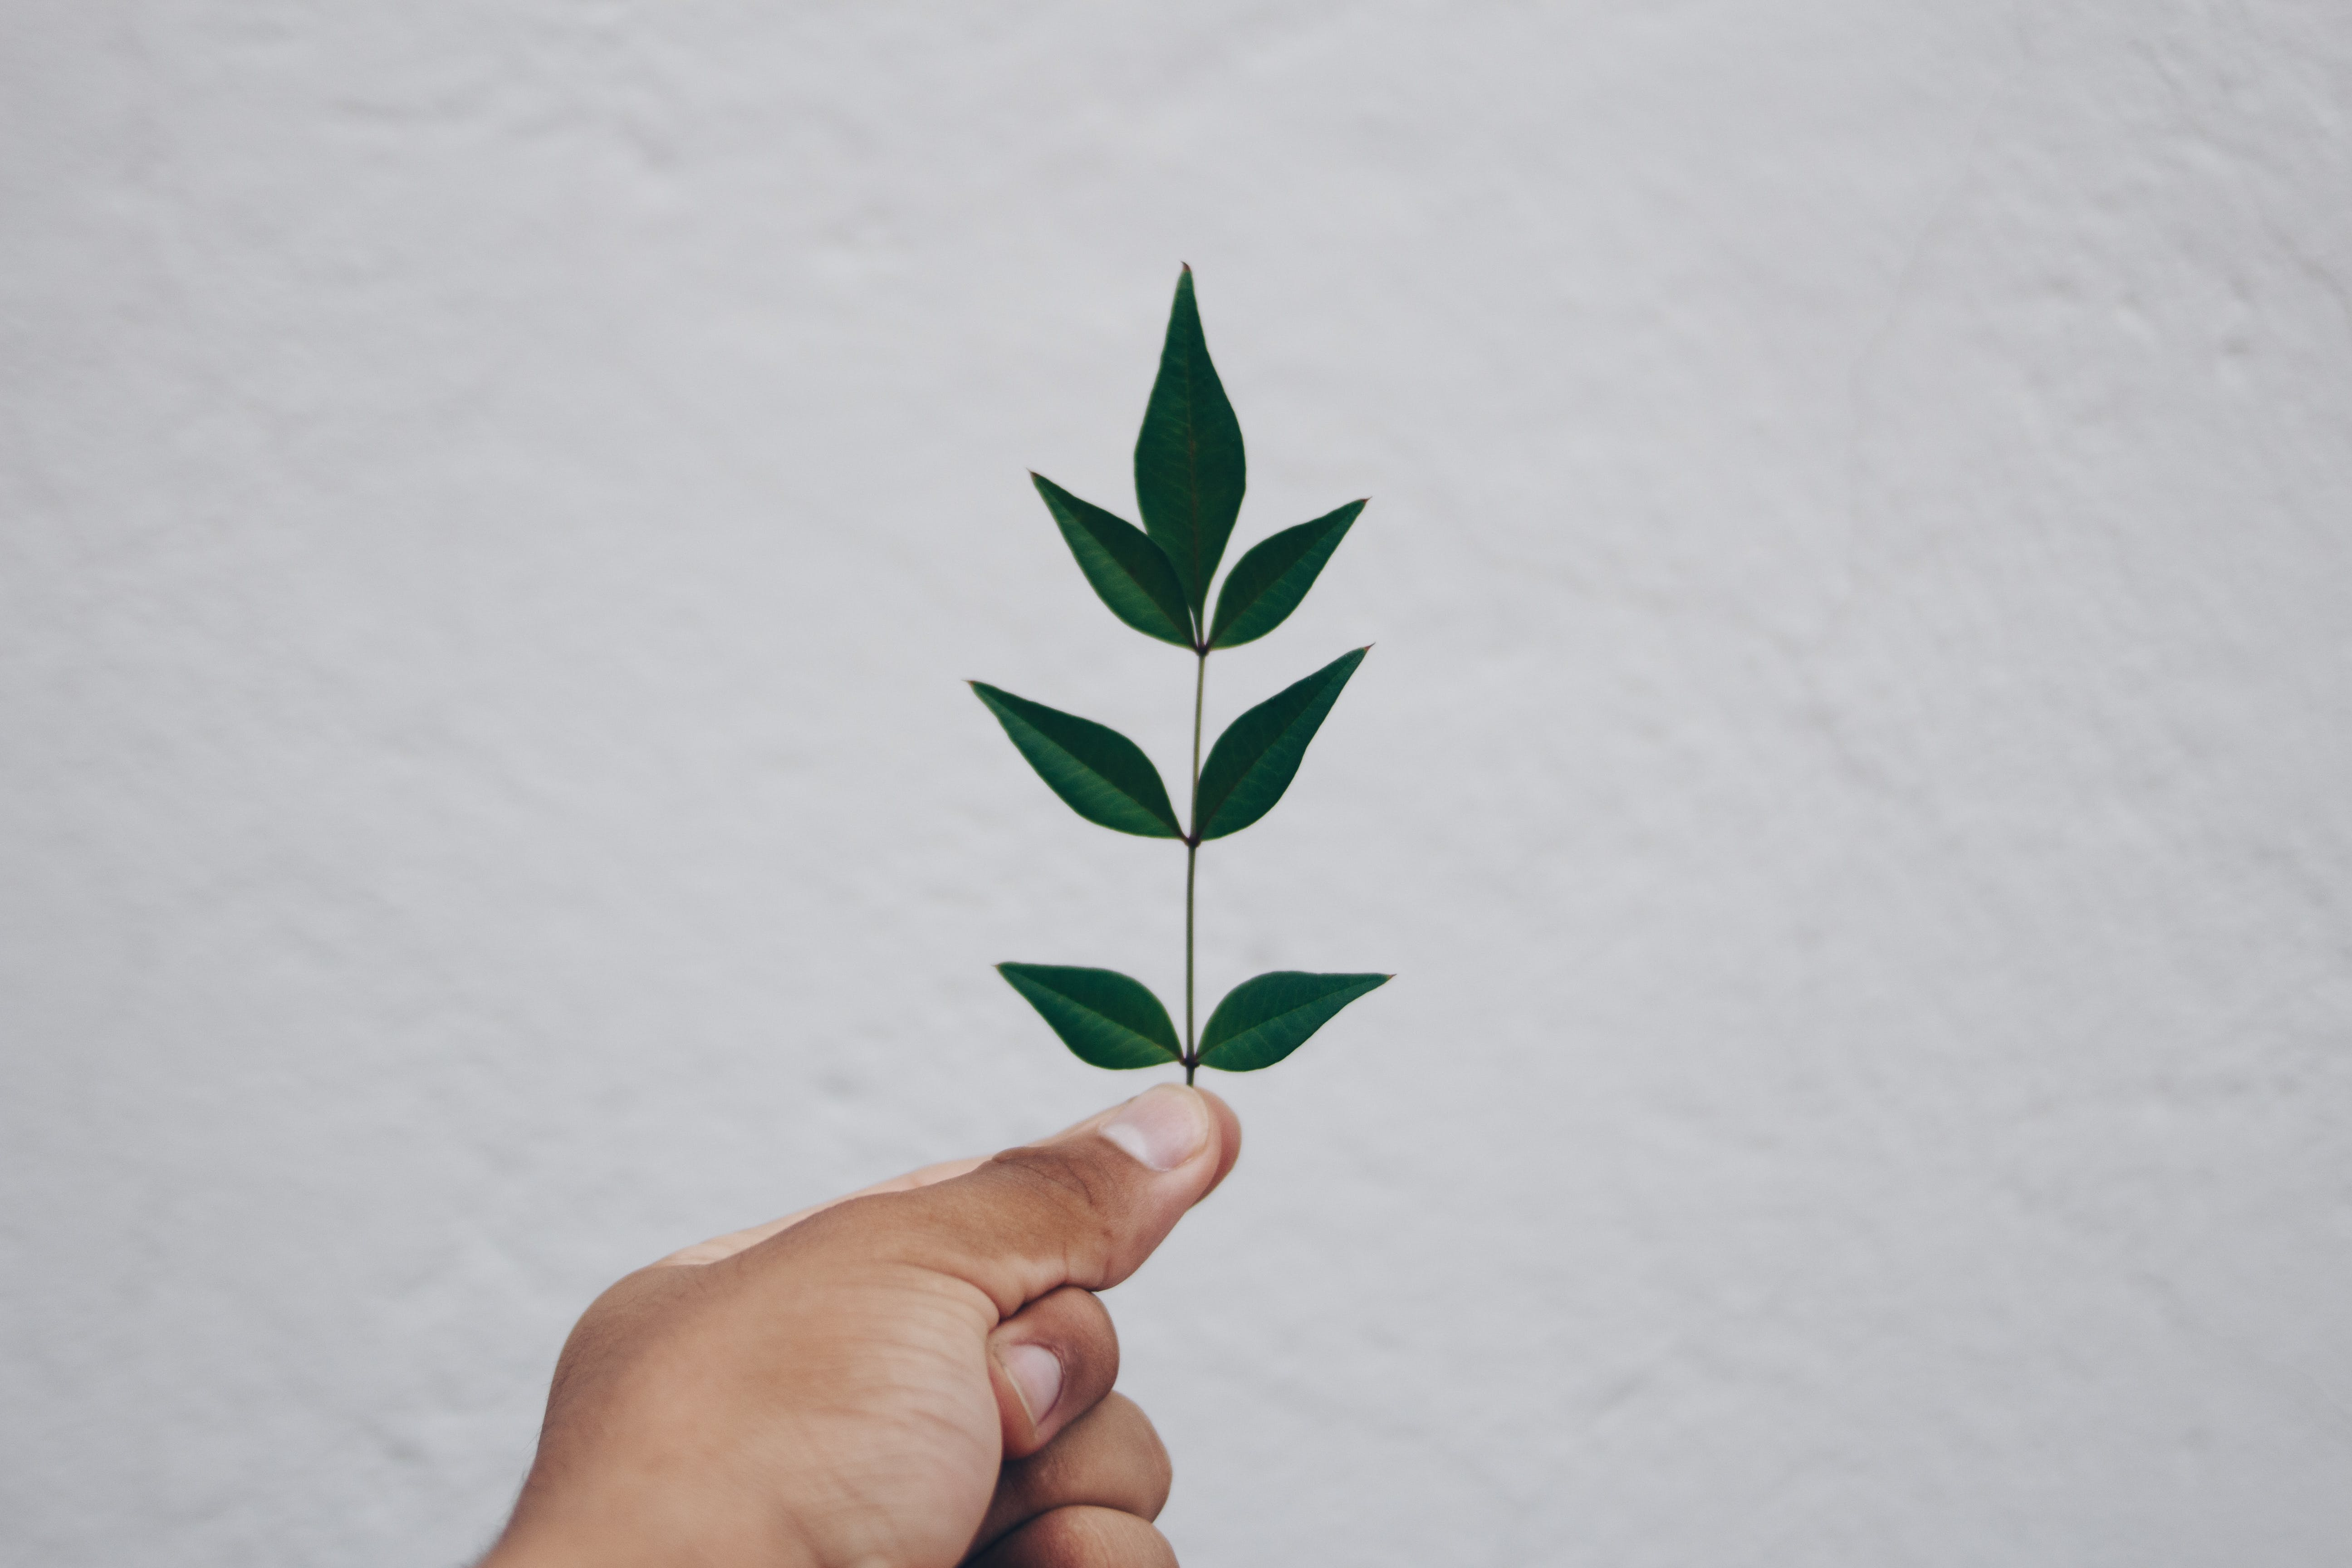 Close-up of Hand Holding Plant Against Sky